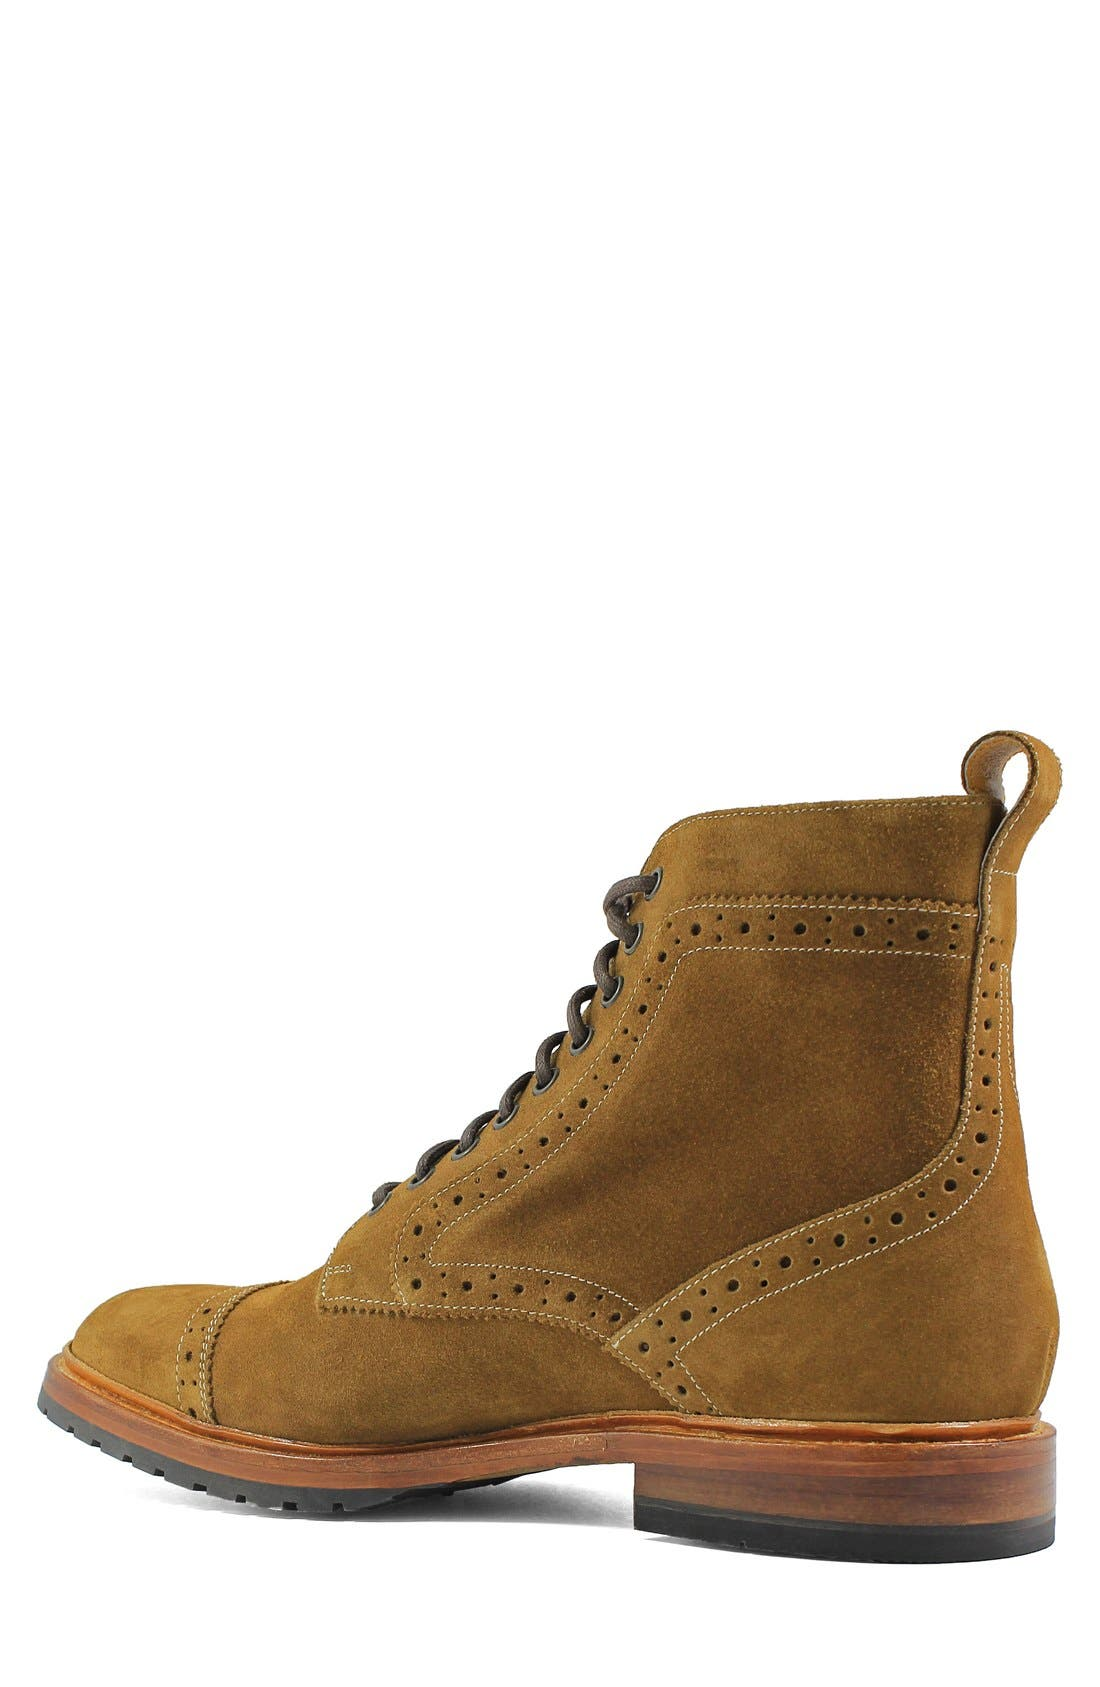 Madison II Cap Toe Lace Boot,                             Alternate thumbnail 4, color,                             TAN SUEDE